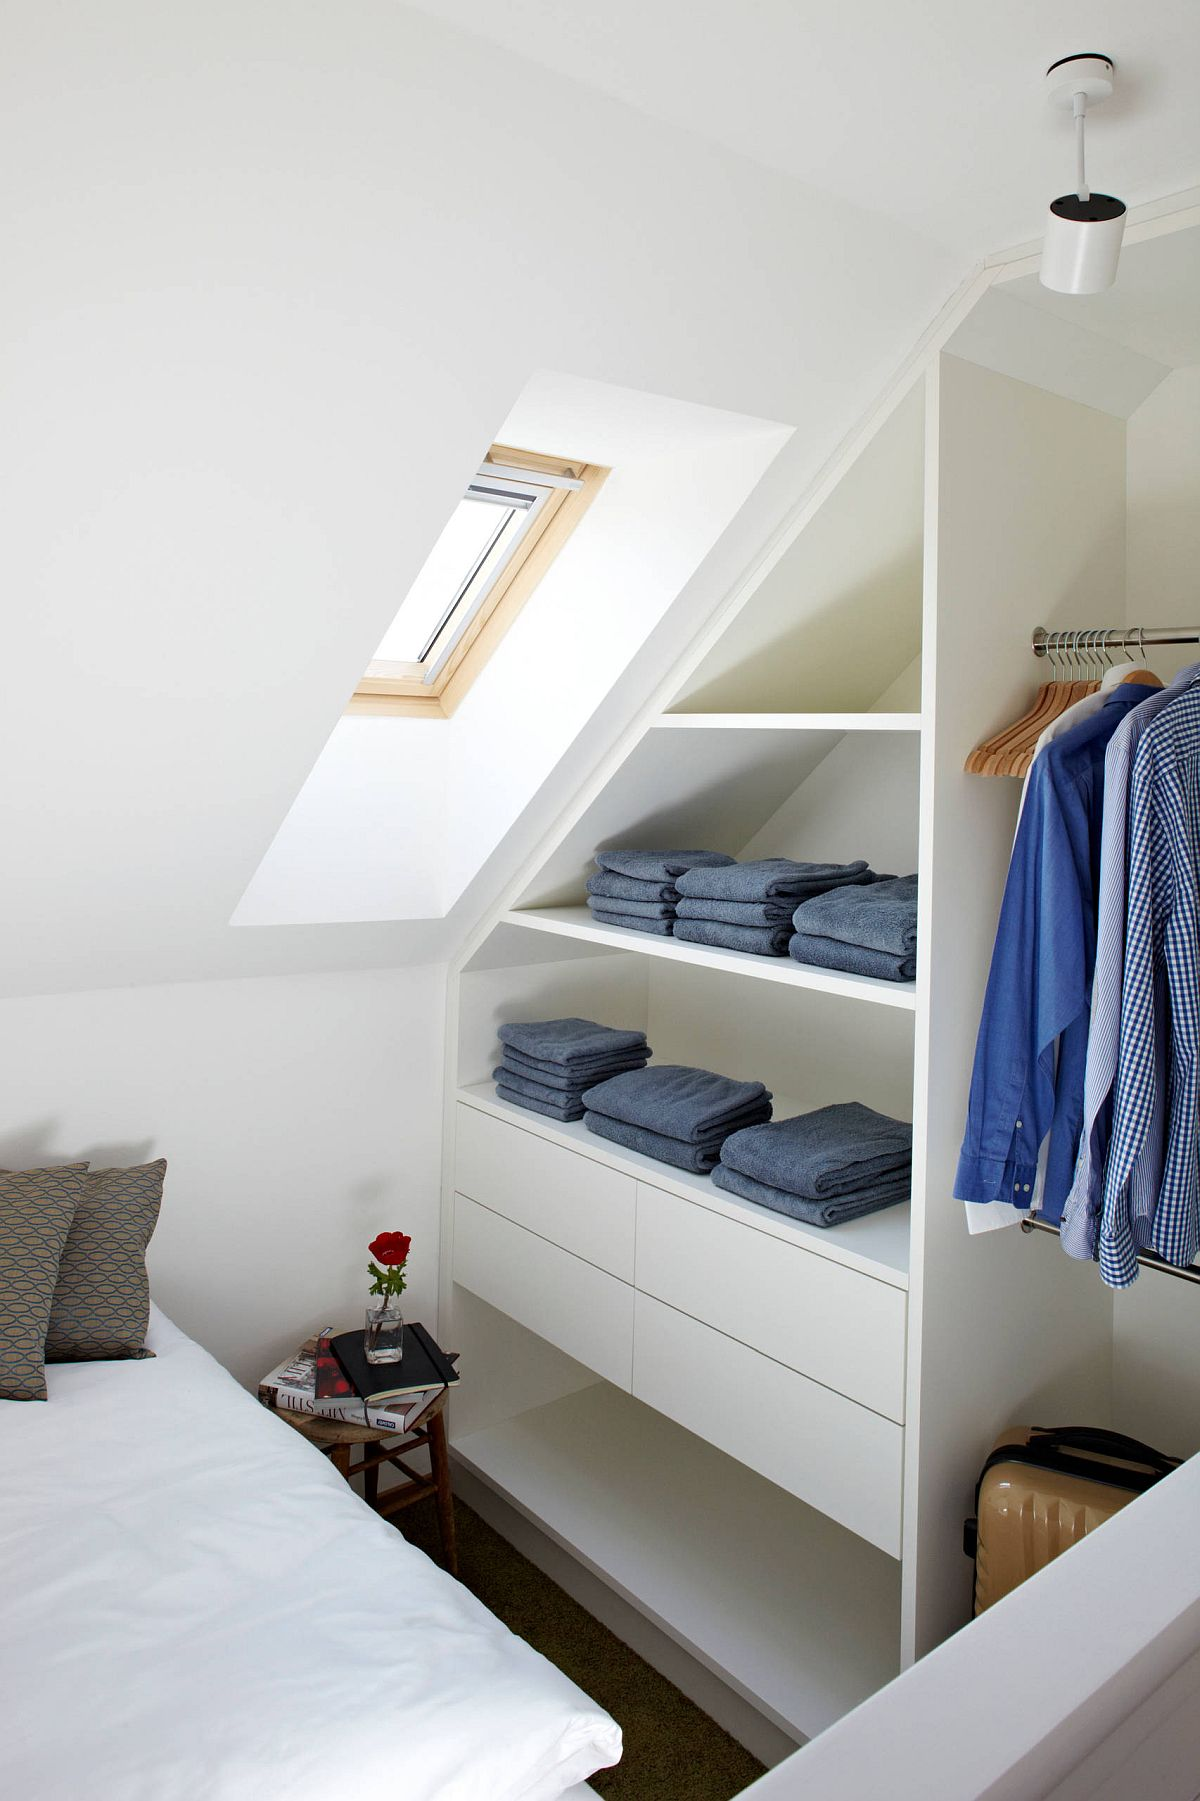 20 Small Apartment Closet Ideas That Save Space With